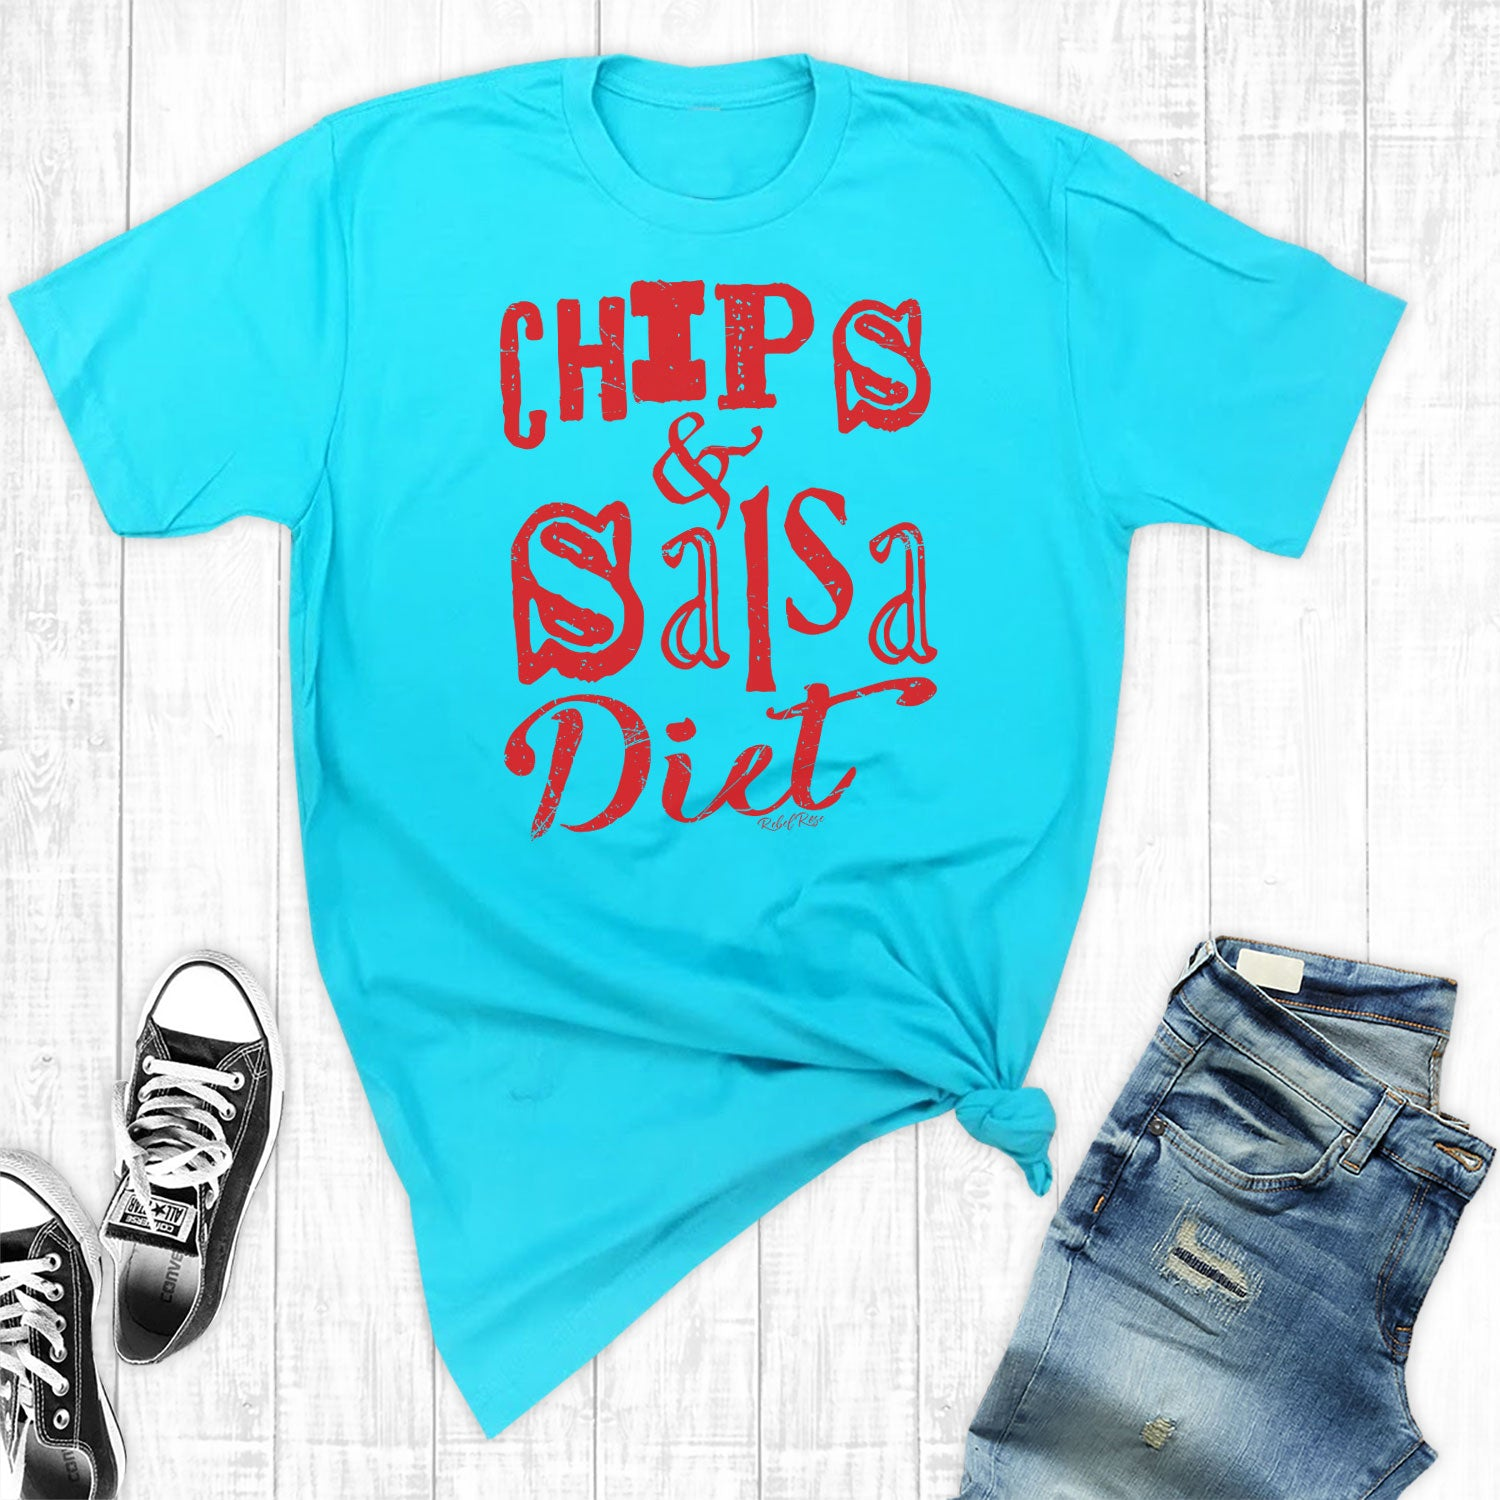 Chips and Salsa Diet